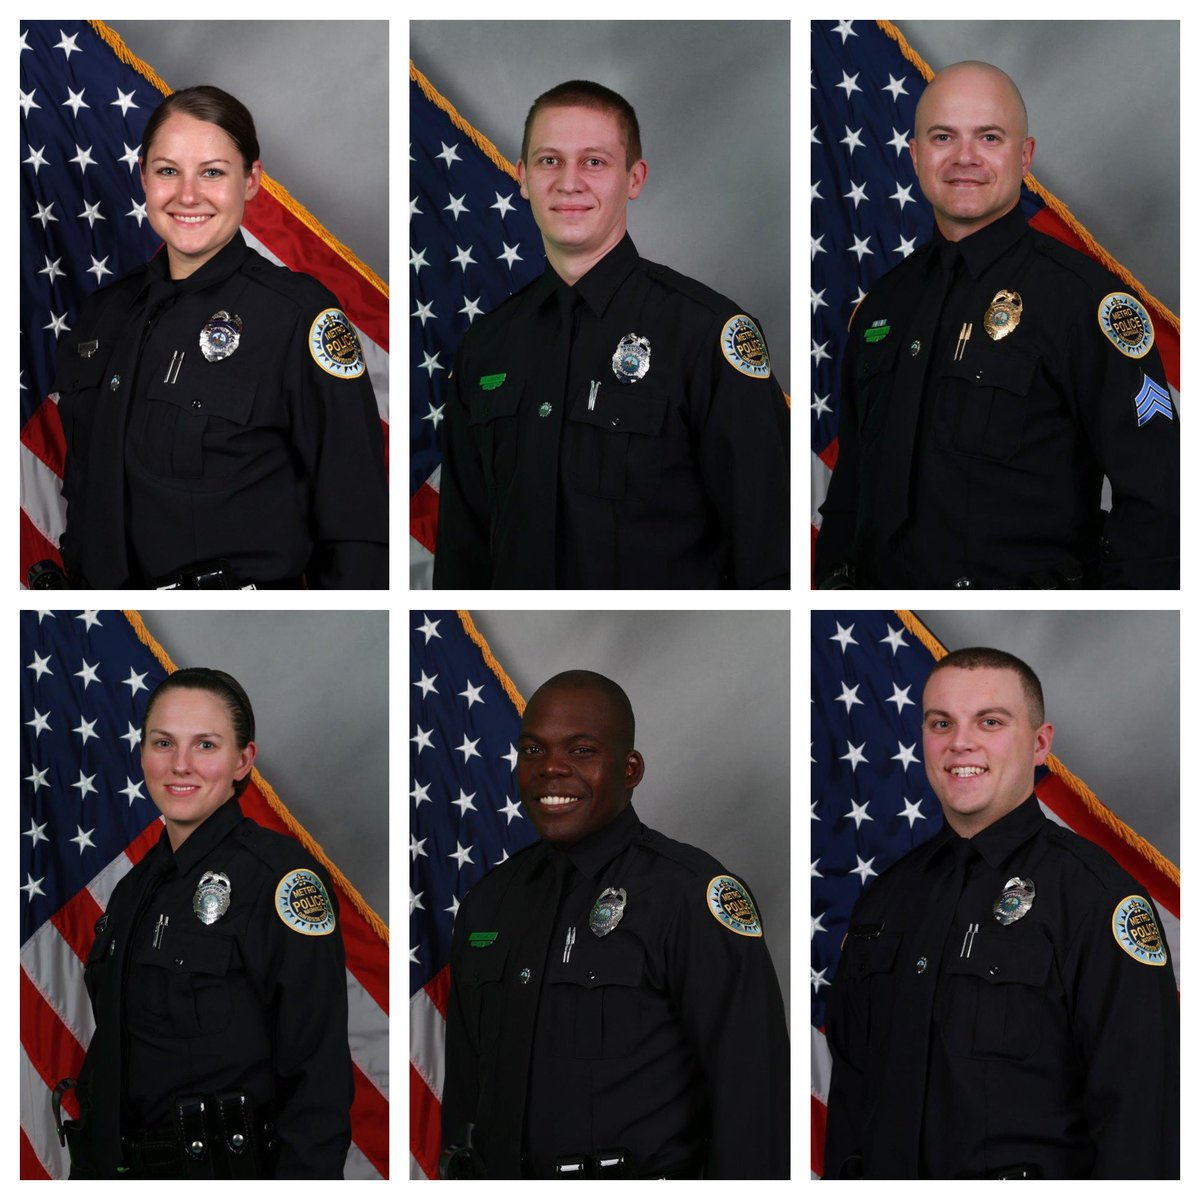 These are the six @MNPDNashville officers who worked to evacuate people before this morning's explosion. Undoubtedly saved lives #nashvillebombing